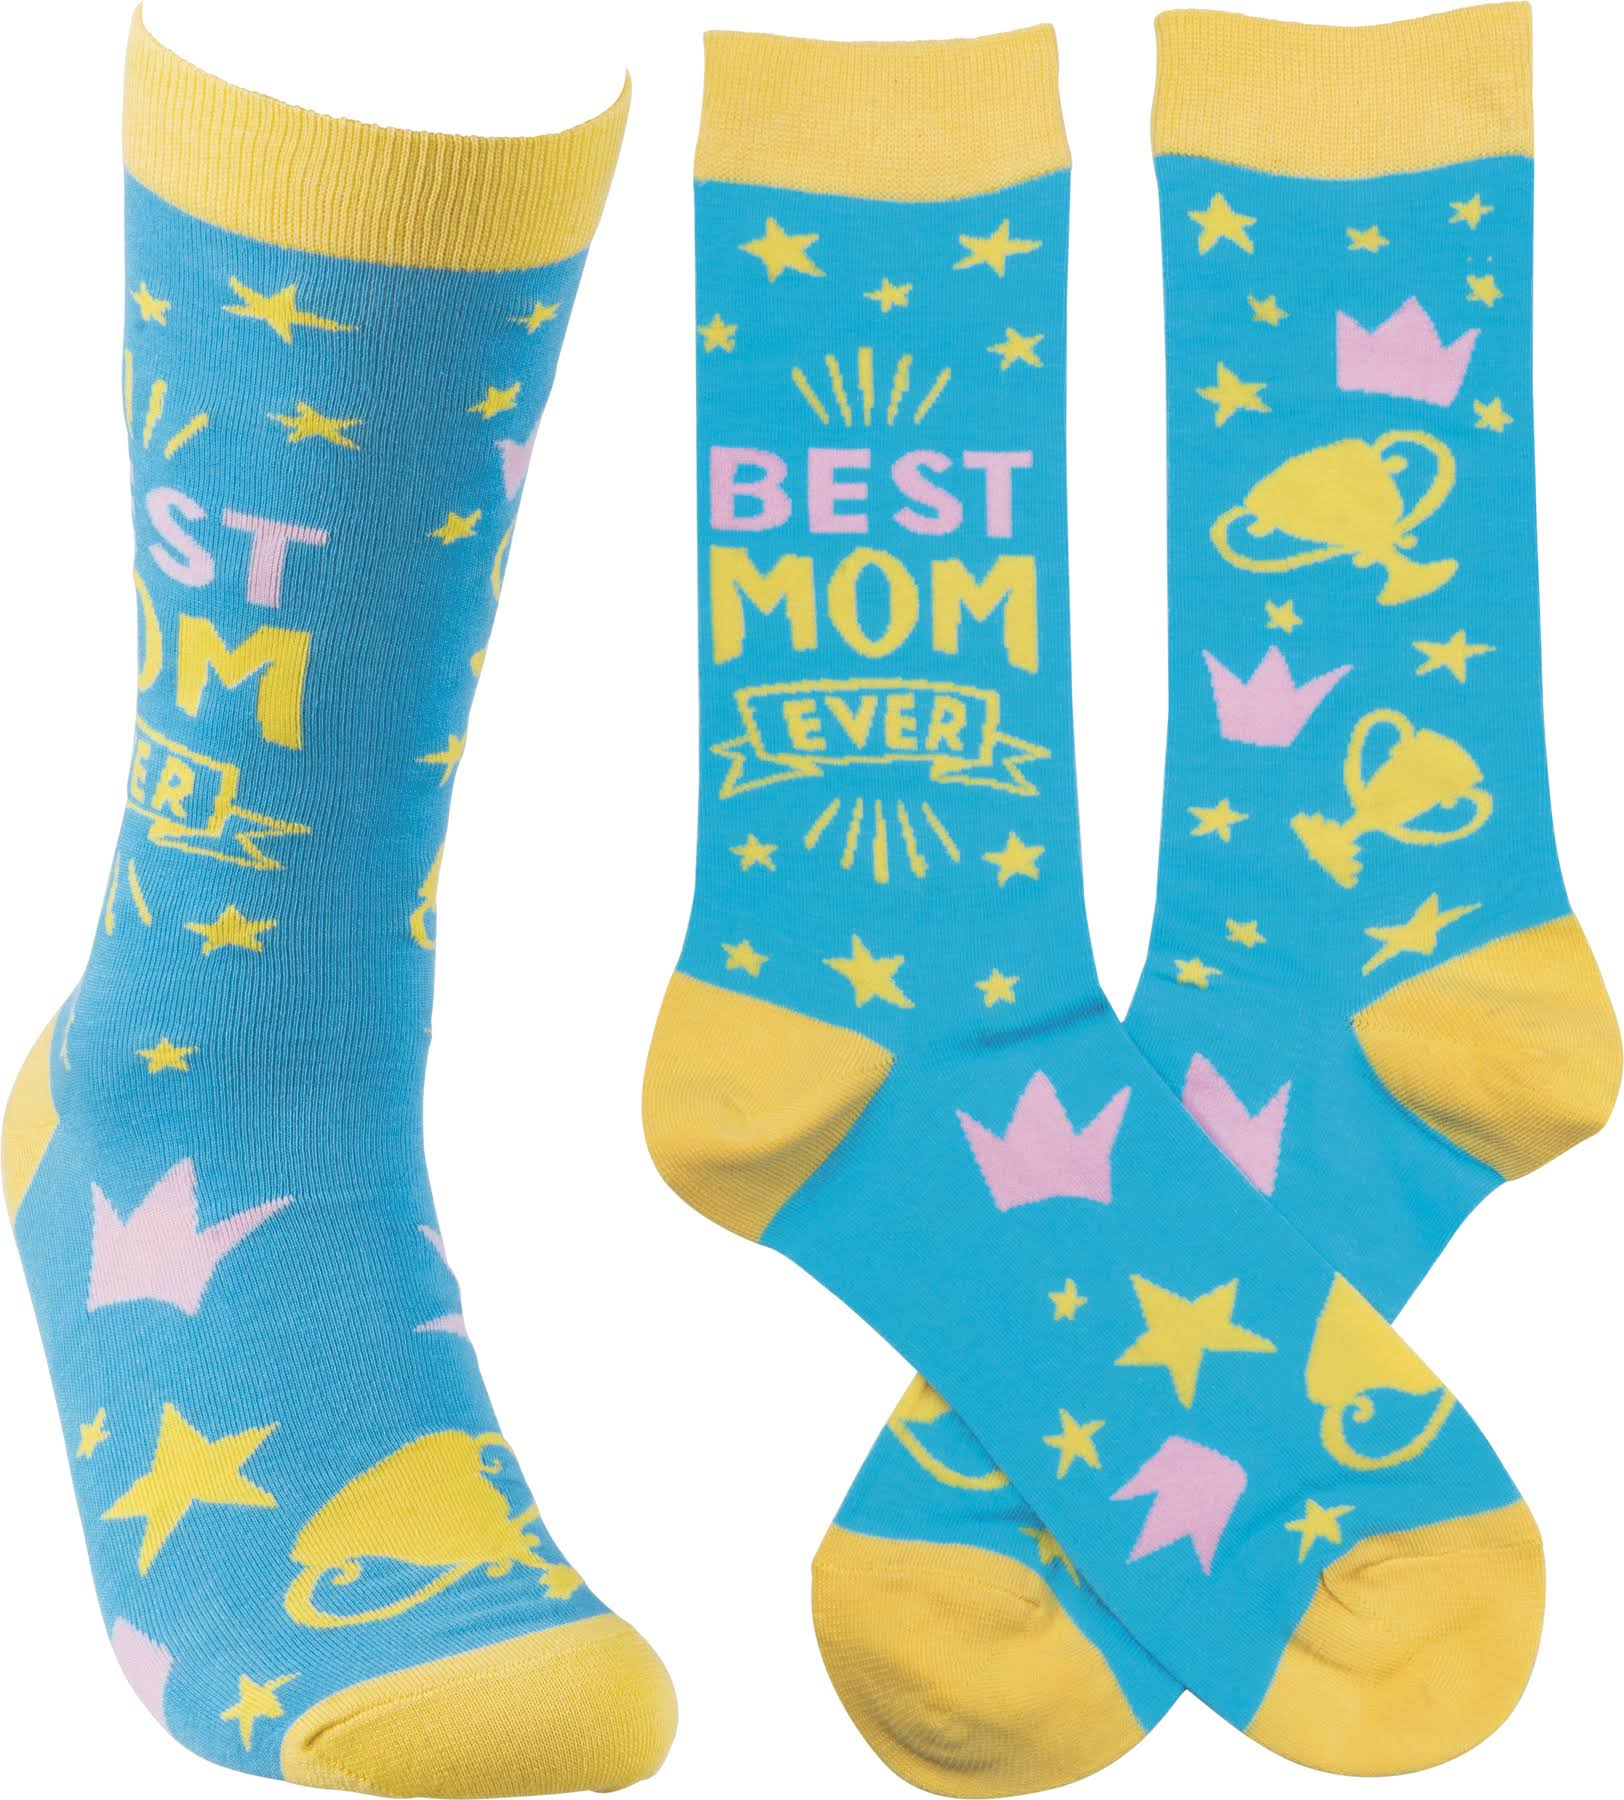 Primitives By Kathy High Socks - Best Mom, Blue, Yellow